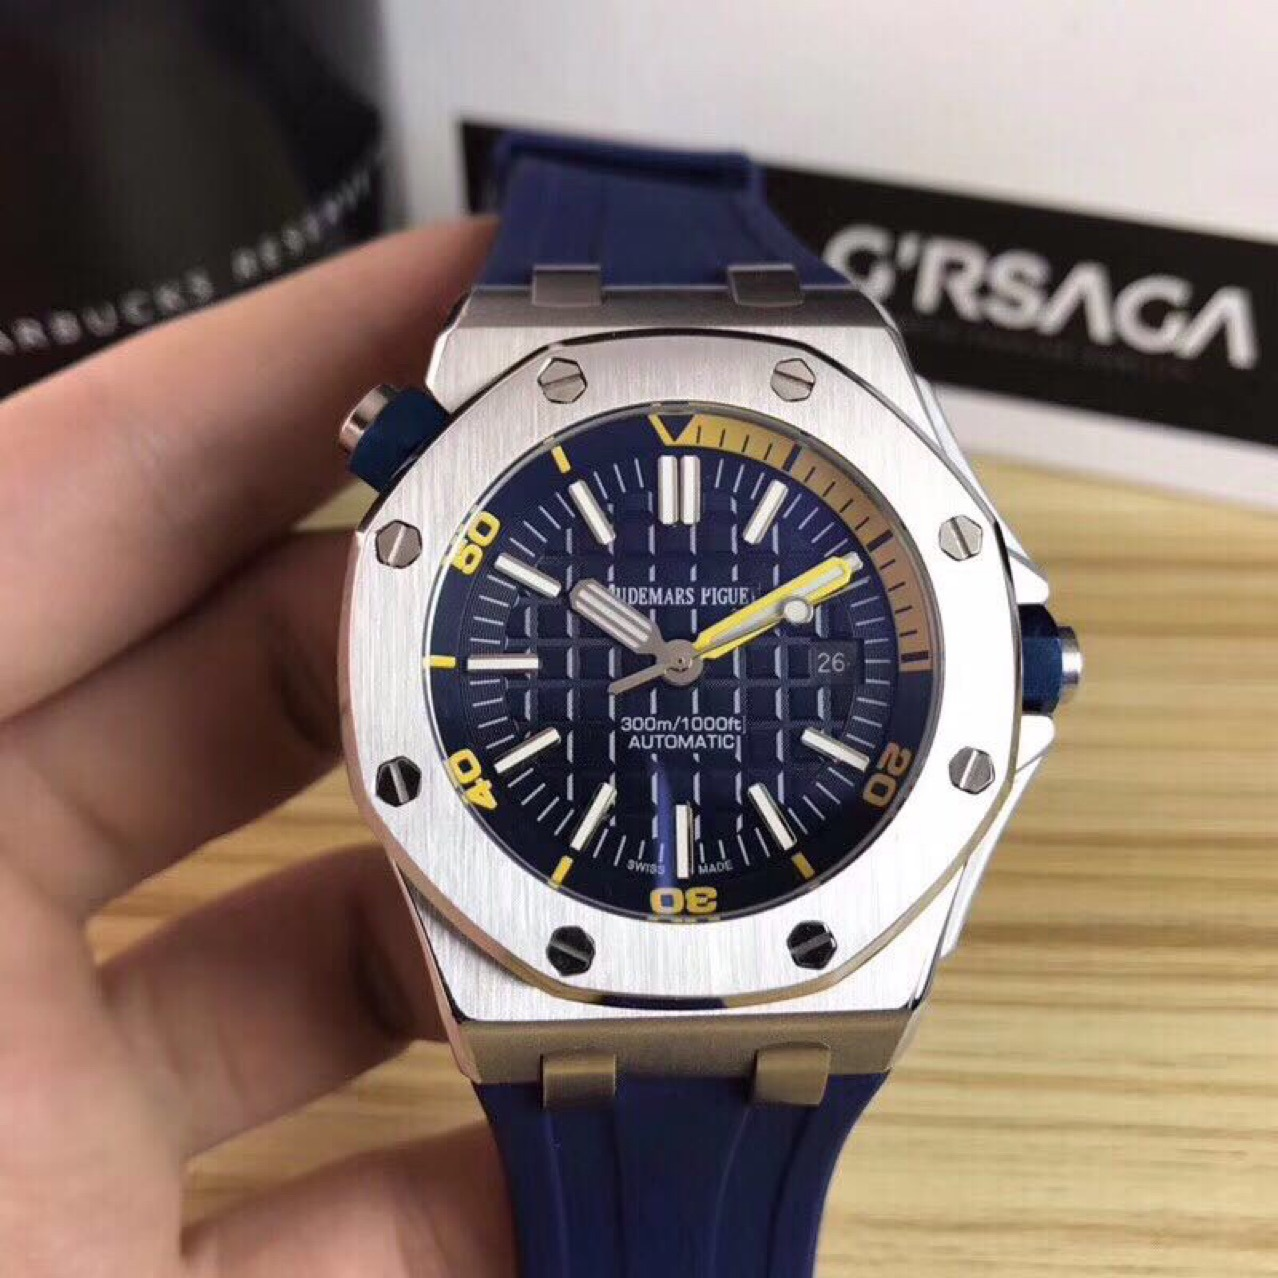 Watch Men Luxury Top Brand Automatic Mechanical Watch Fashion Male Watch Shockproof Luminous Wristwatch 50M Waterproof|Mechanical Watches|   - AliExpress